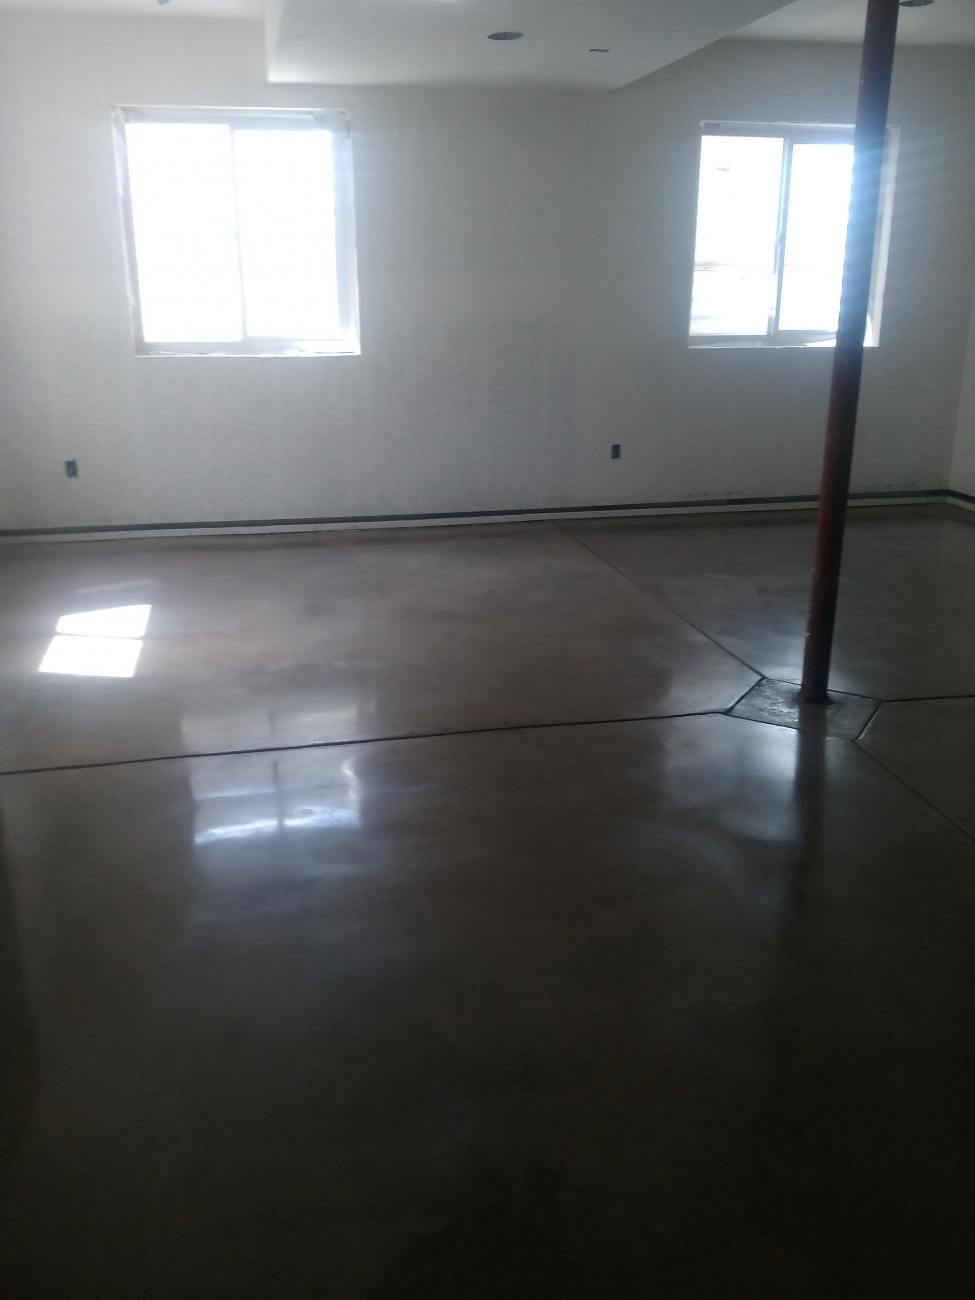 Polished Concrete Floor In A Residential Basement